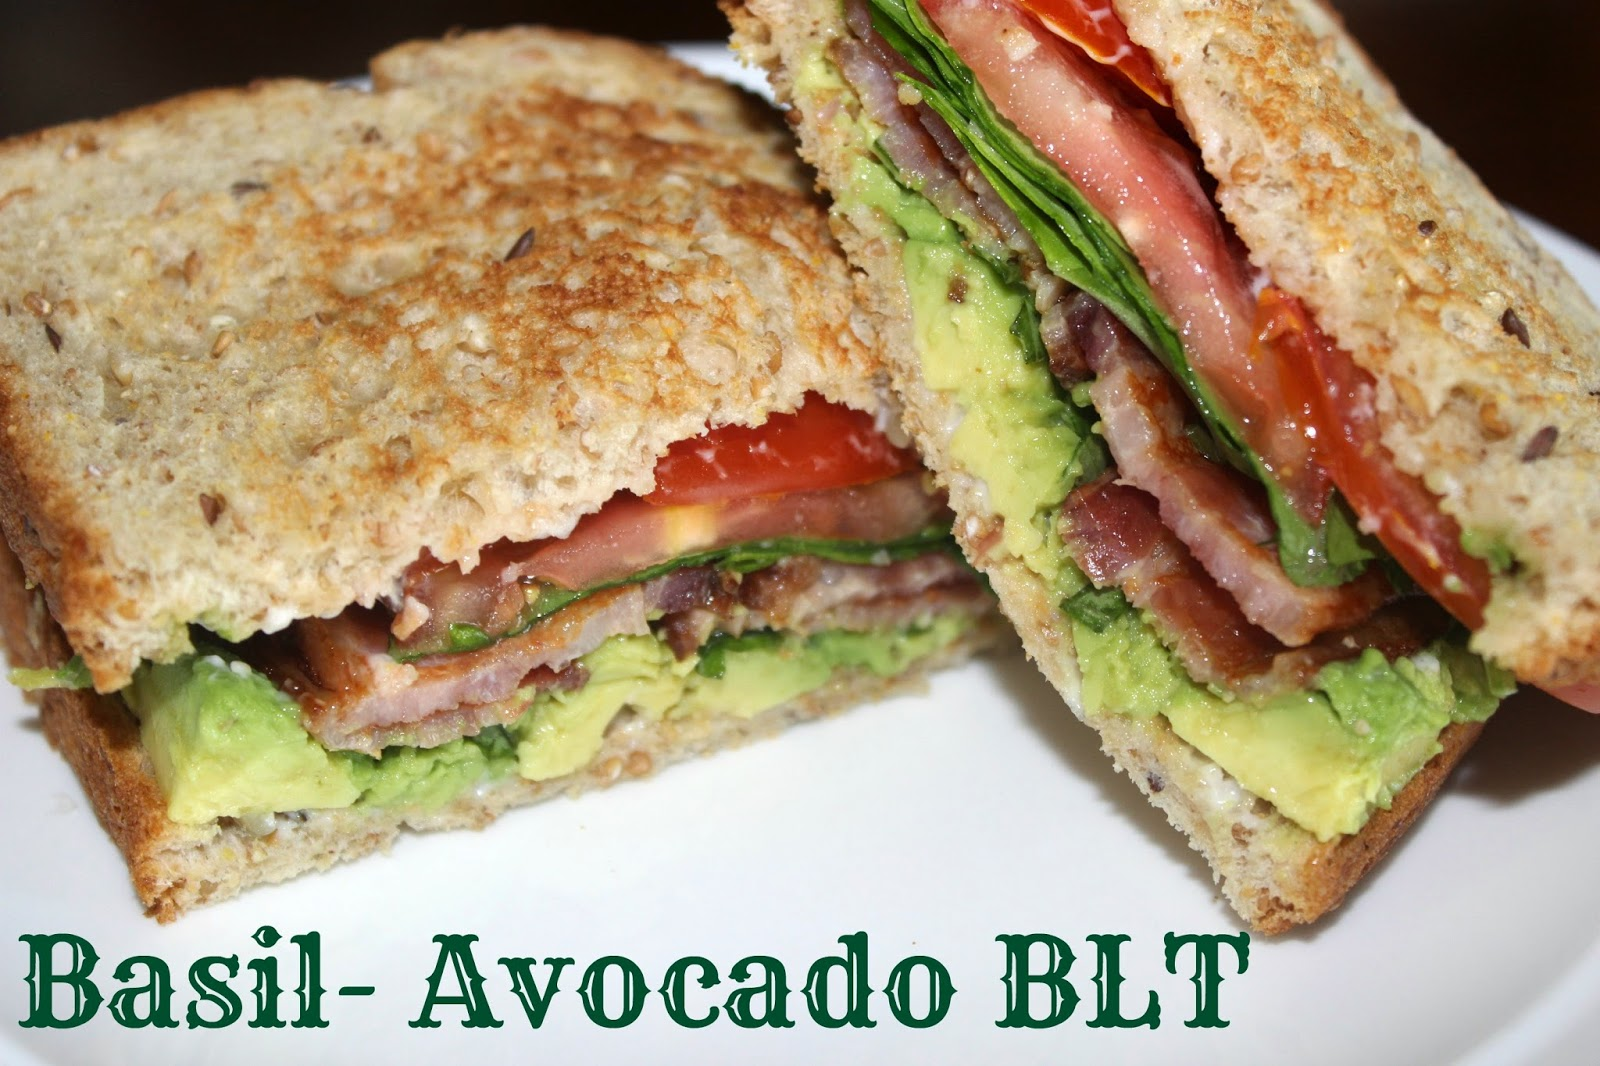 simply made with love: {eMeals Recipe} Basil- Avocado BLT